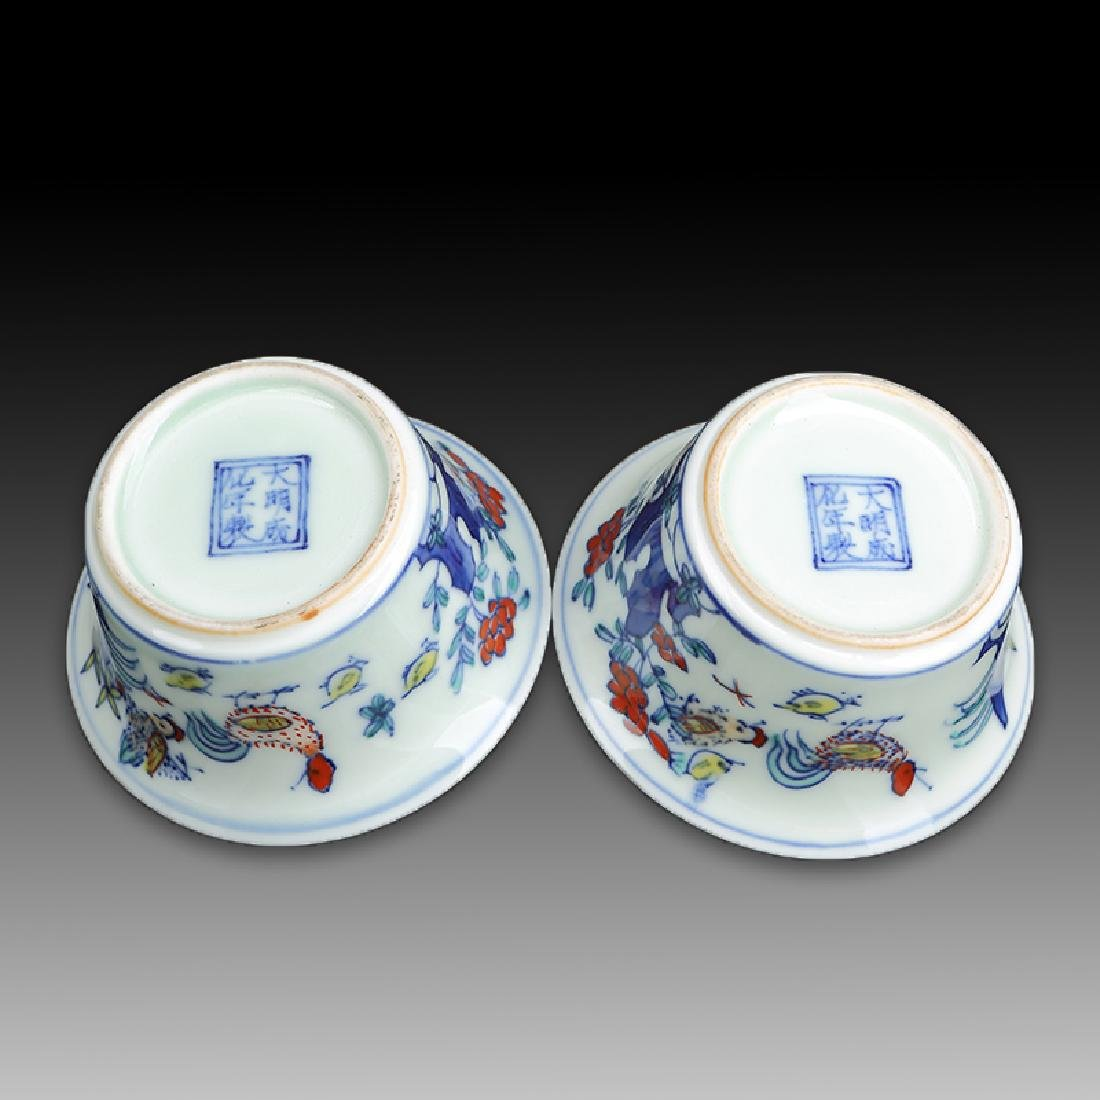 Pair of Chinese Doucai Porcelain Cups - 3